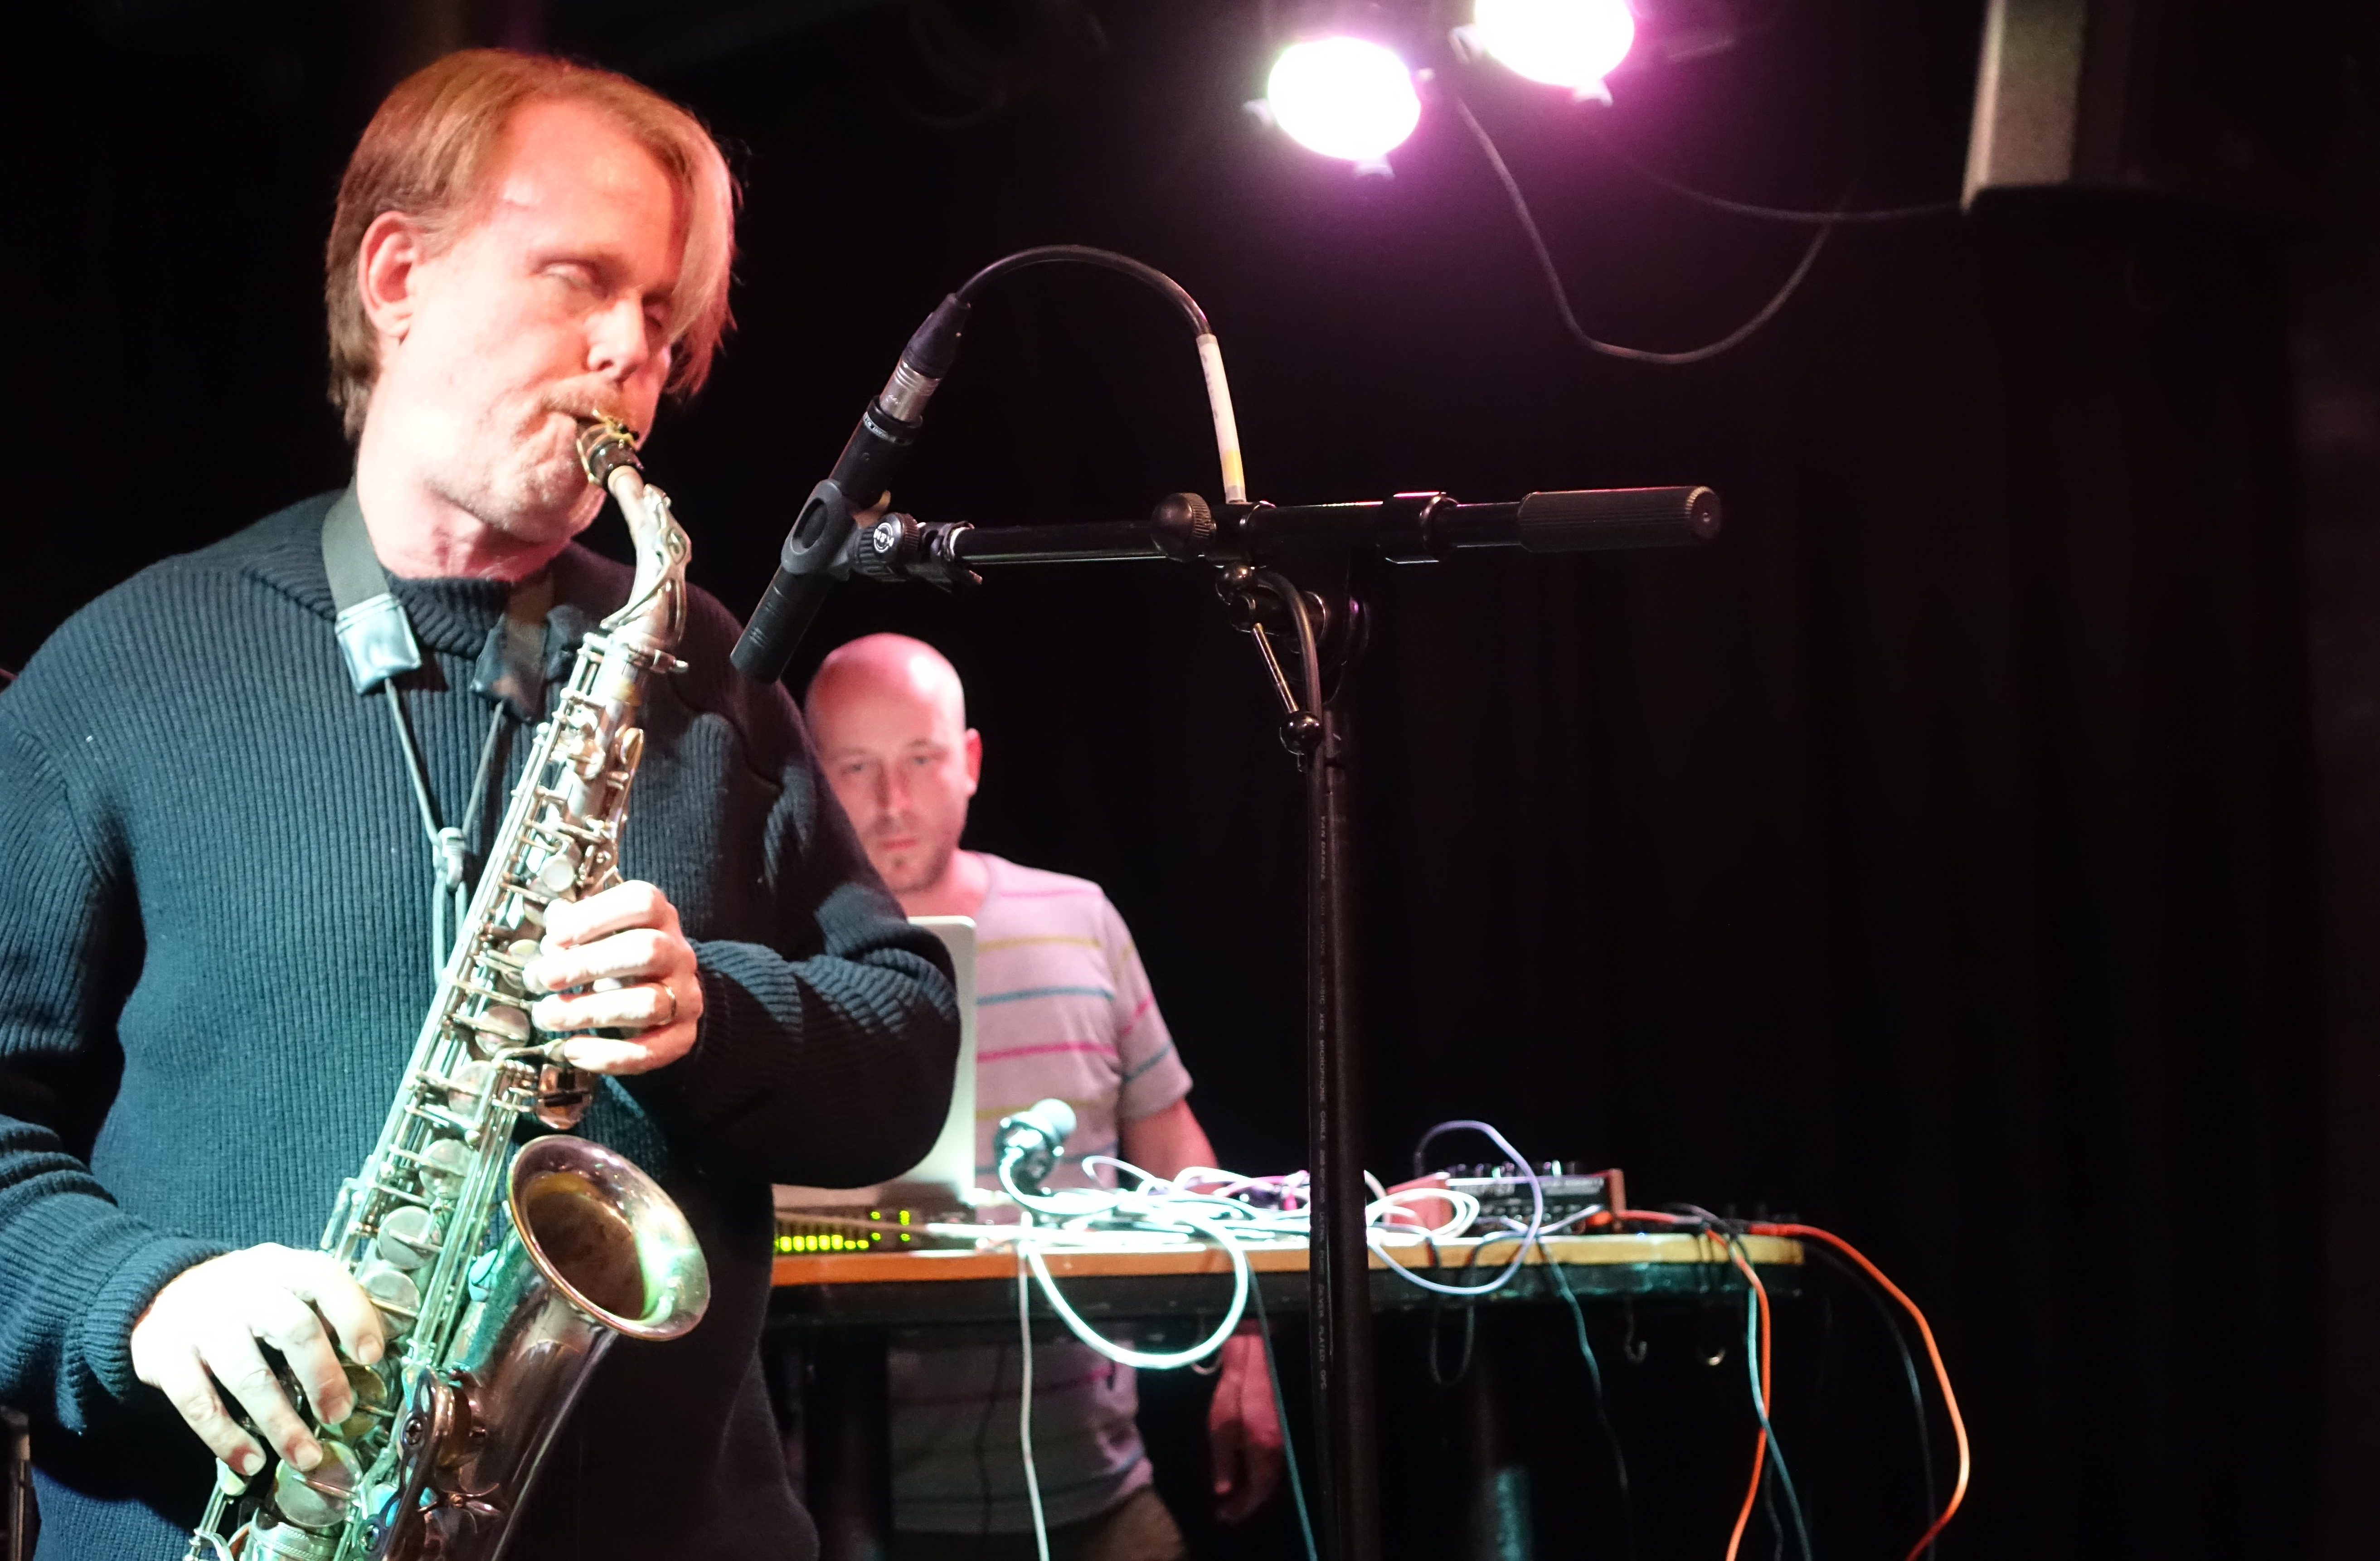 John O'Gallagher and Alex Bonney at the Vortex, London in December 2017